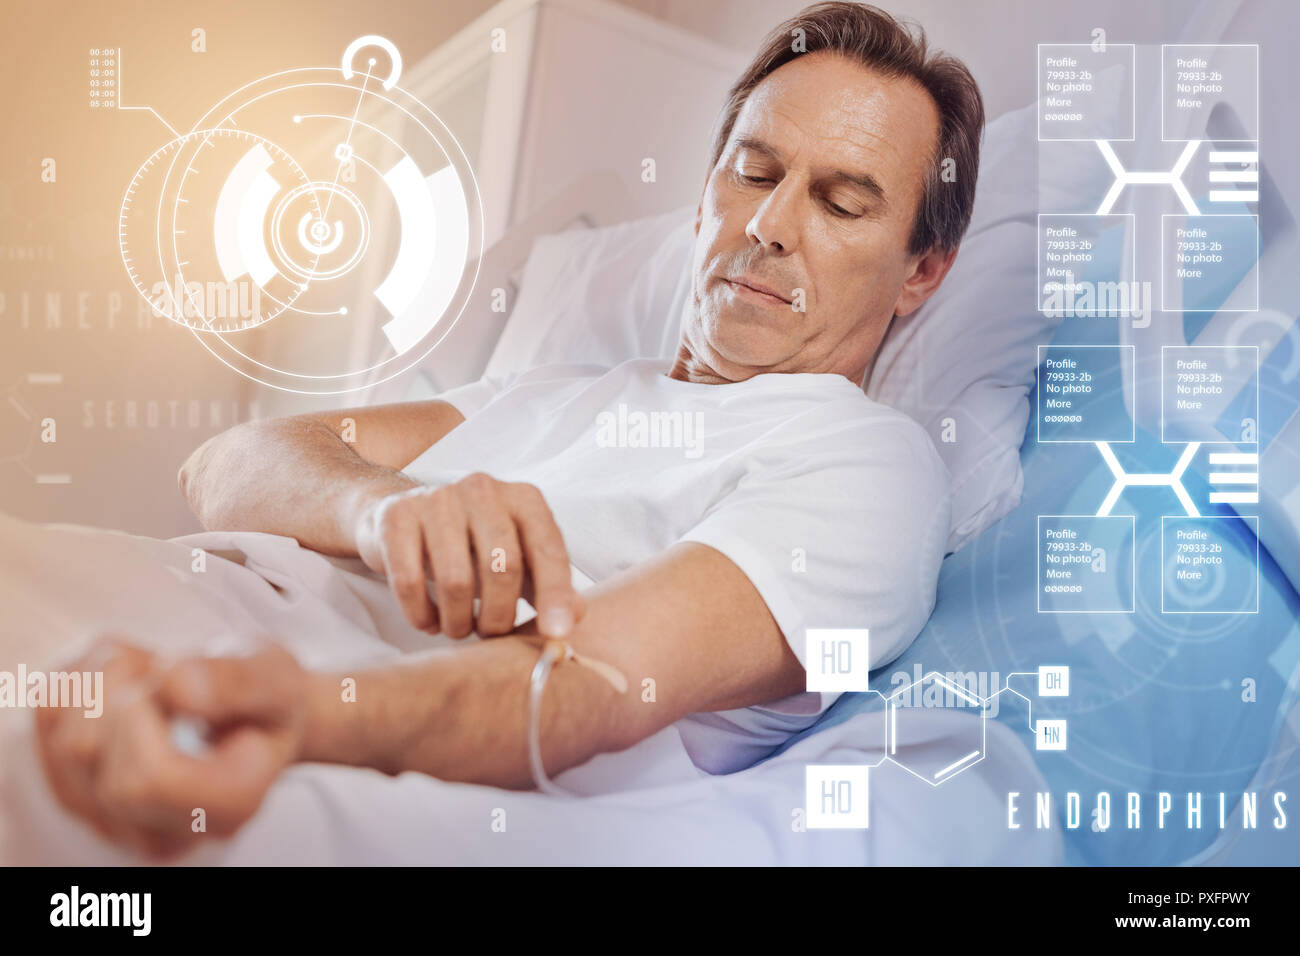 Serious patient staying in bed and feeling worried while touching his catheter - Stock Image